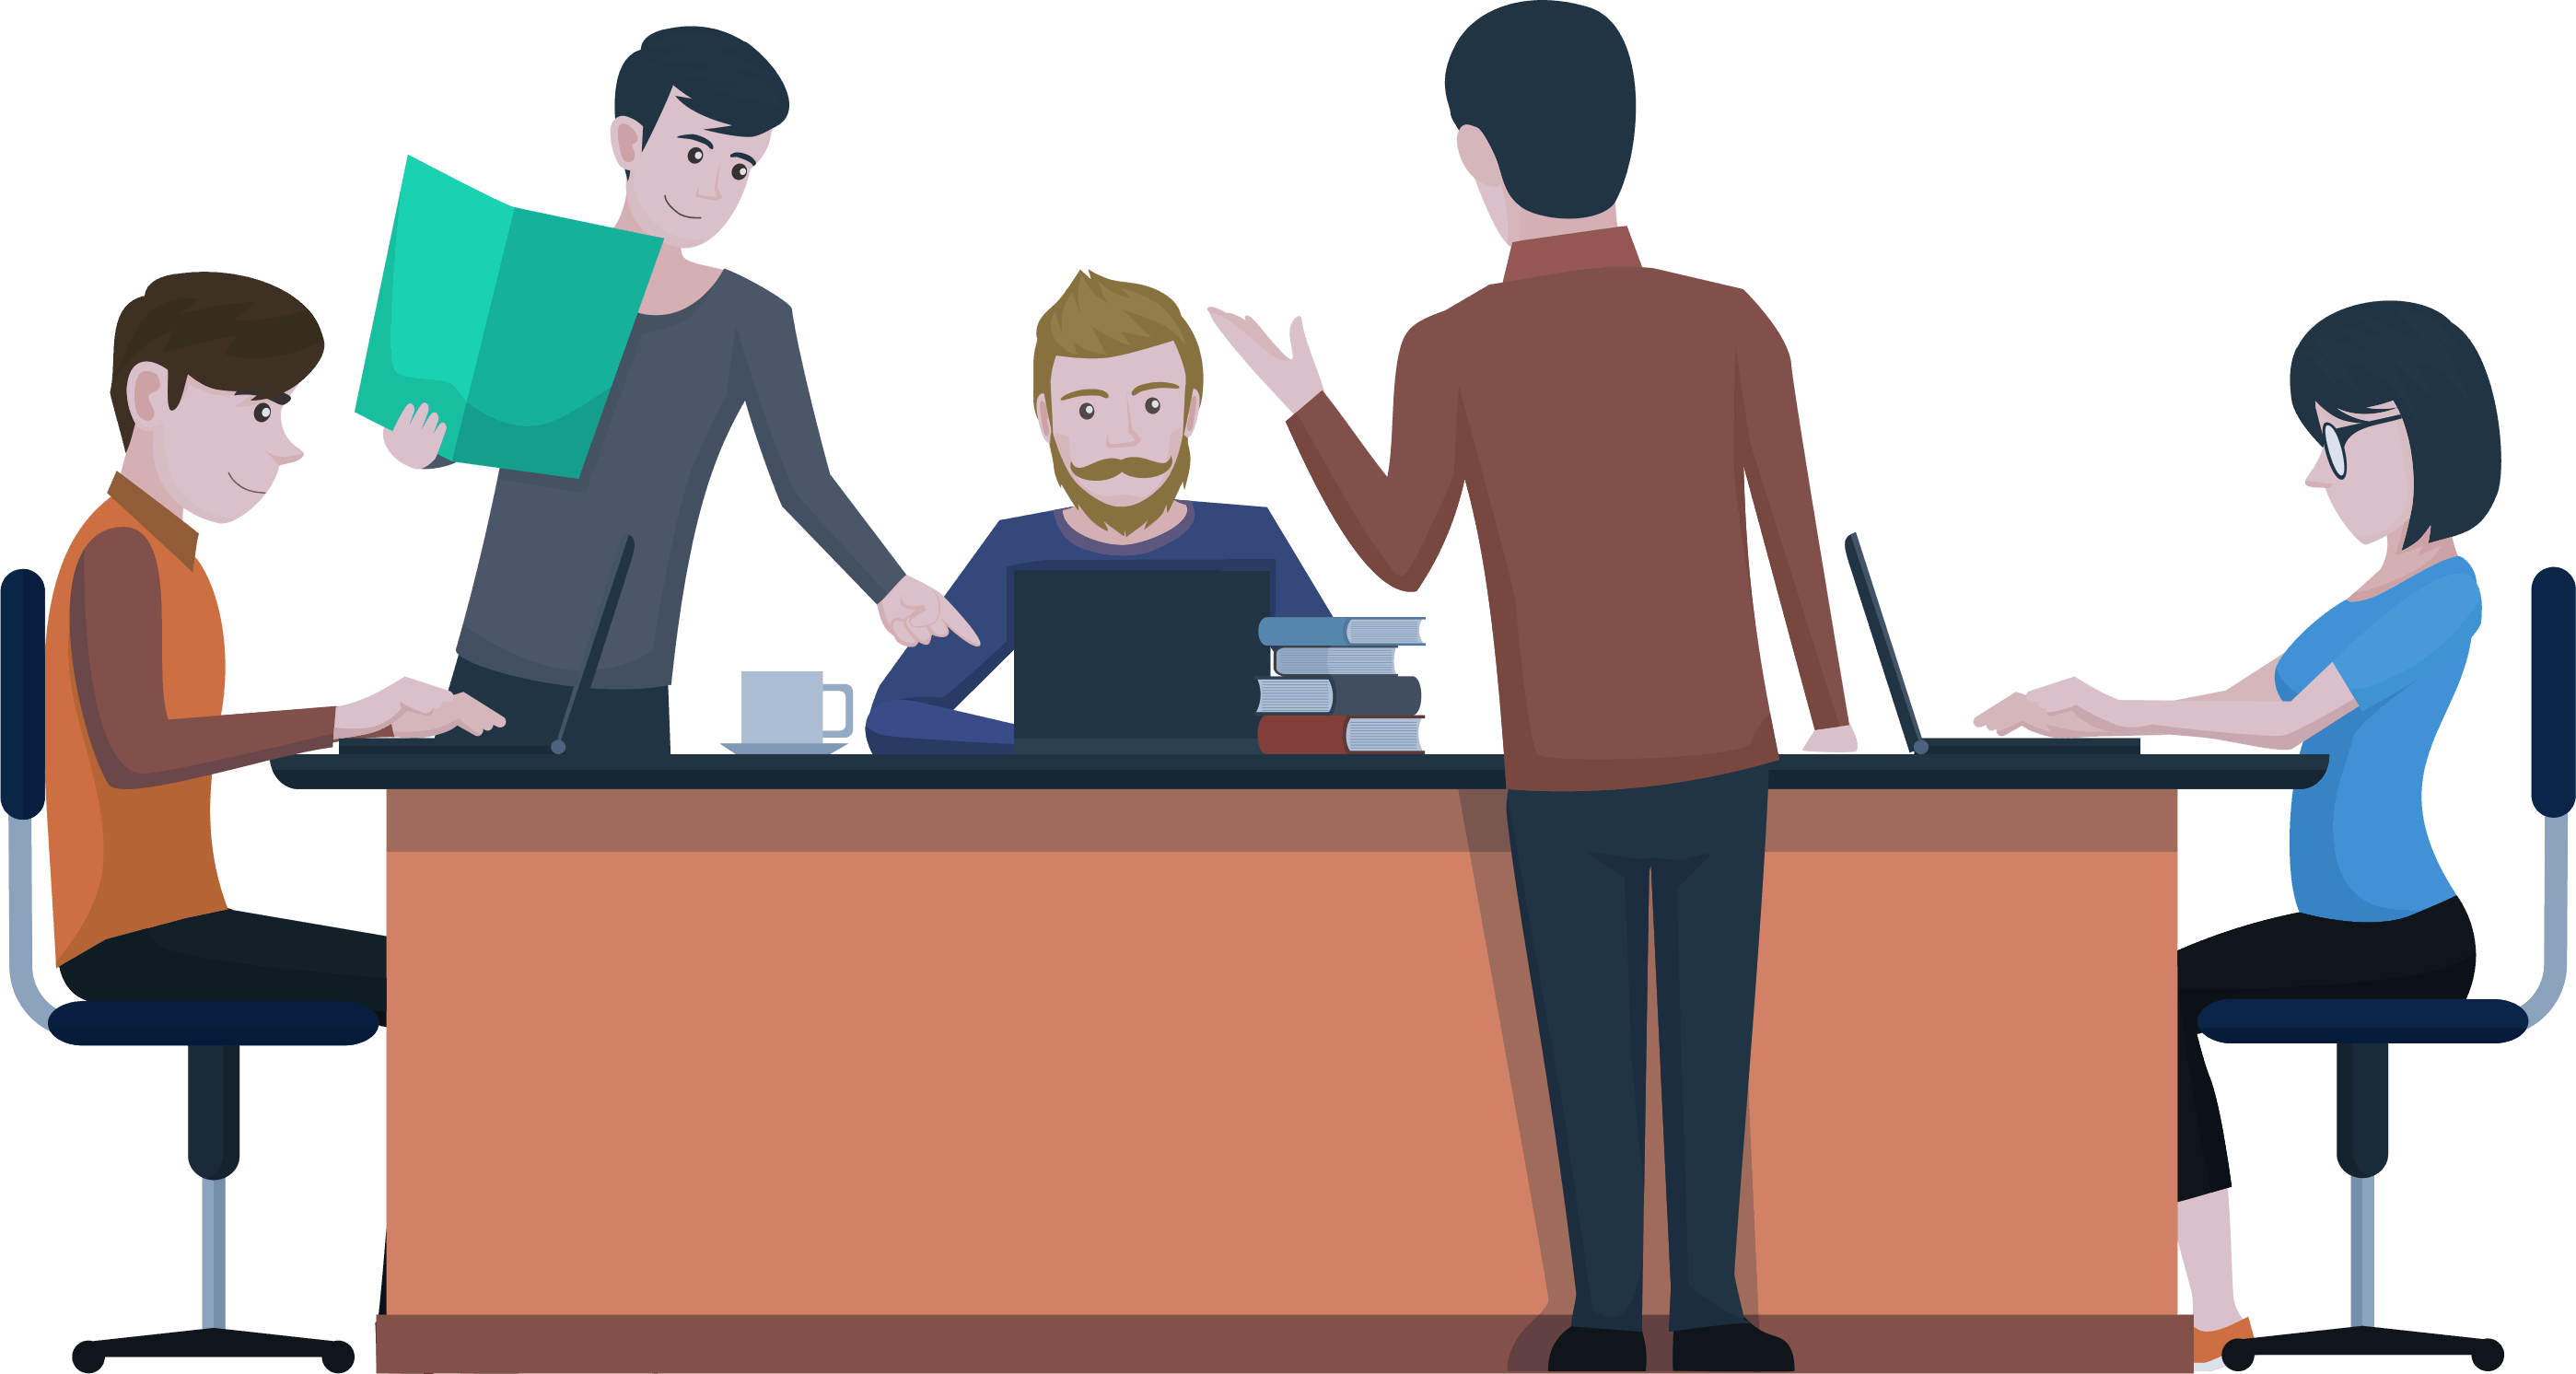 Illustration representing a Web Agency